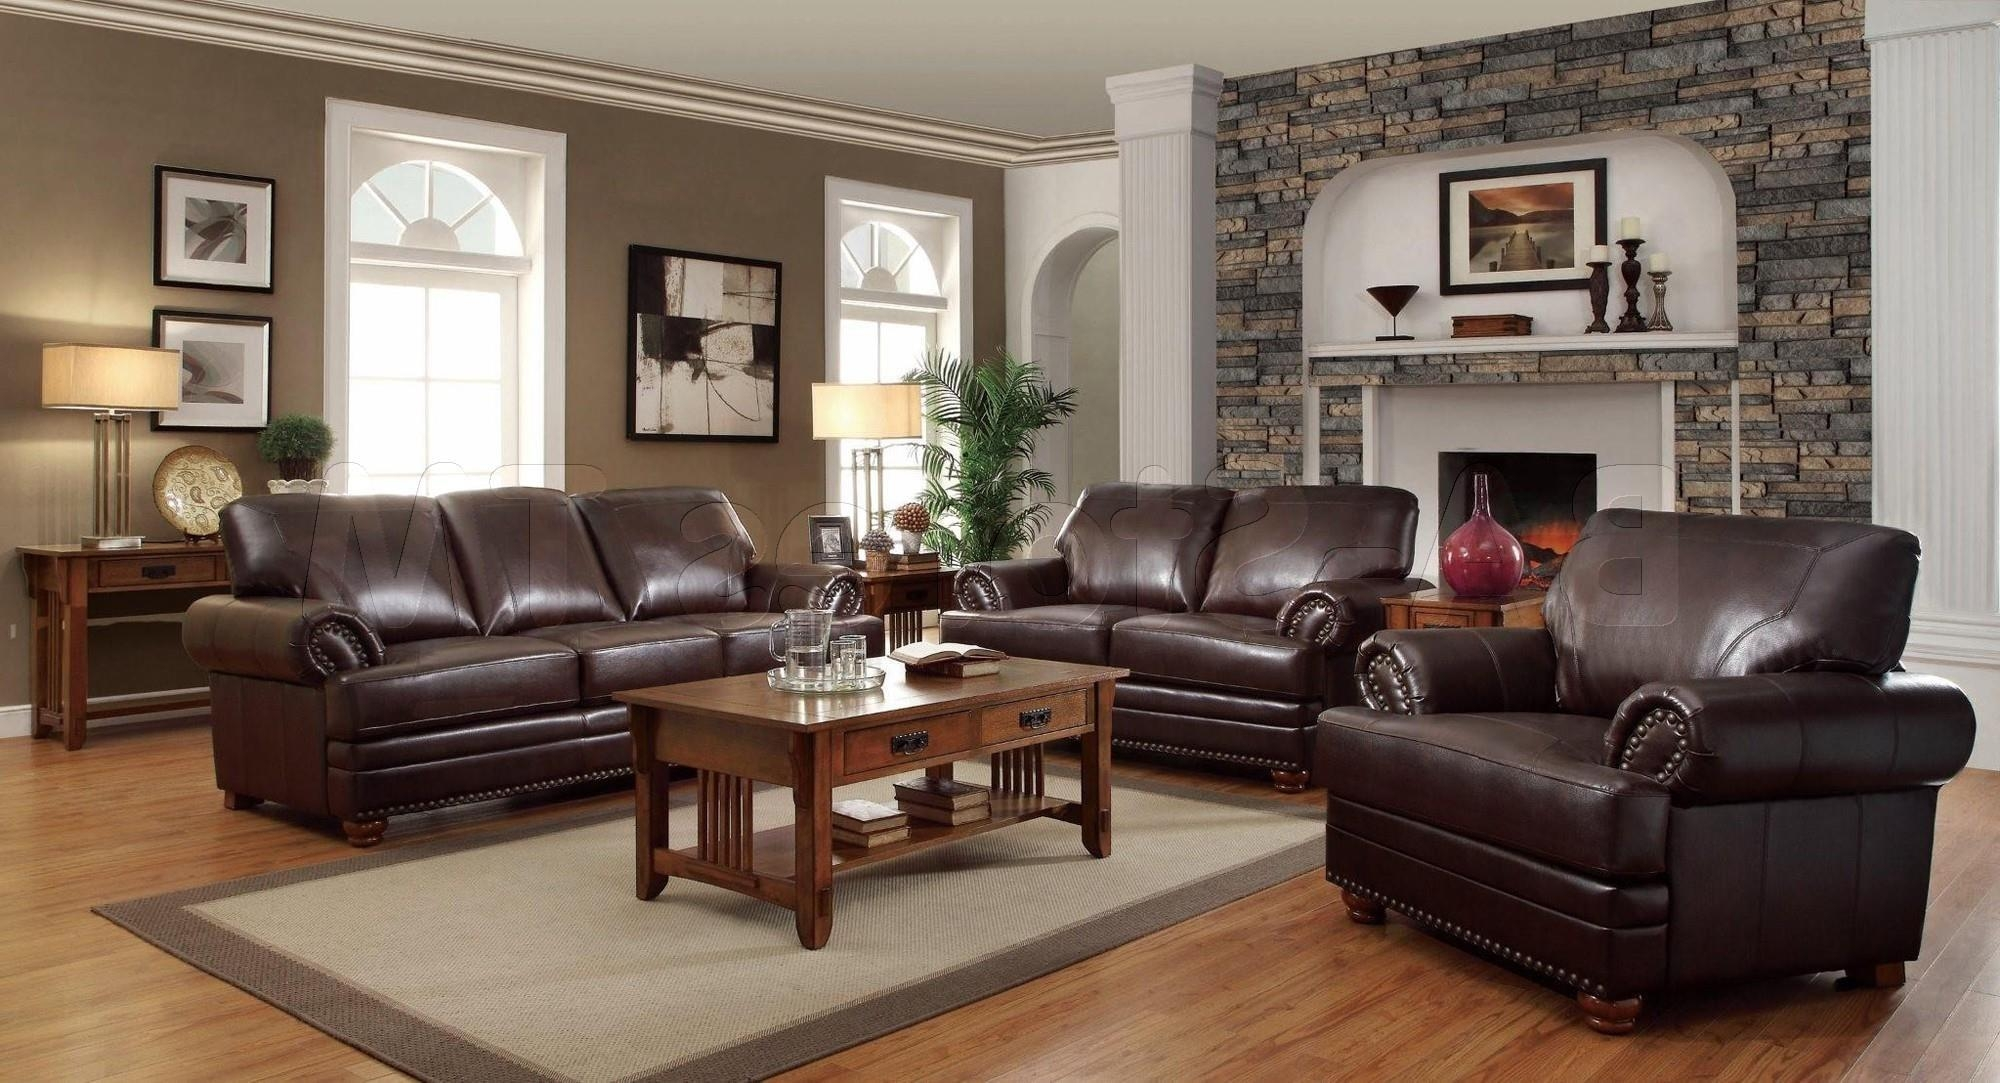 Awesome Decorating Ideas For Living Rooms With Brown Leather Pertaining To Living Room With Brown Sofas (Image 3 of 20)